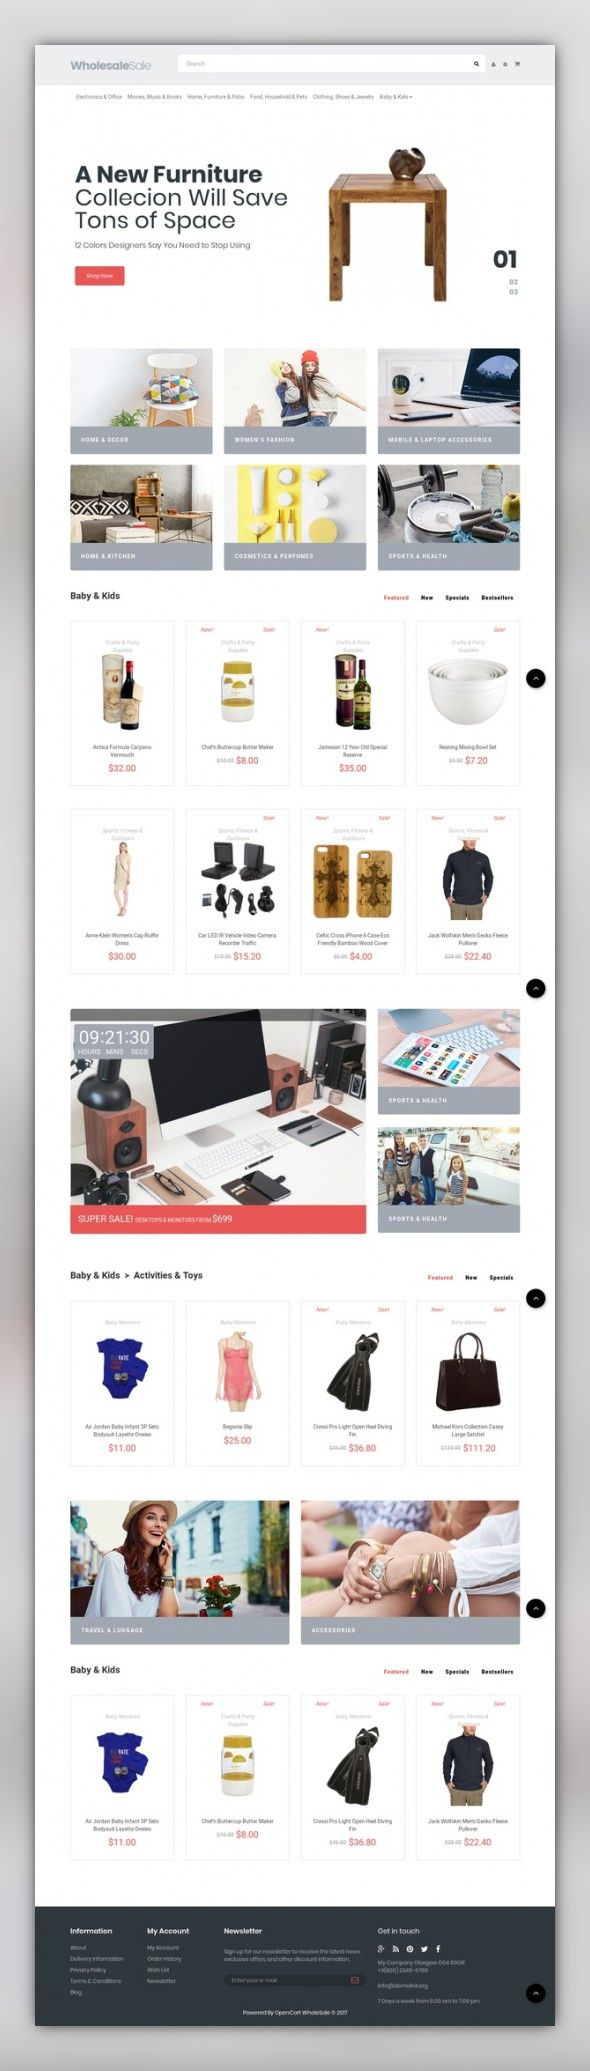 Wholesale Store Responsive OpenCart Template E-commerce Templates, OpenCart Templates, Business & Services, Wholesale Store Wholesale is a fully responsive and SEO friendly OpenCart Theme, produced for wholesale websites. This theme has everything to help you succeed in selling online. No professional skills are require...